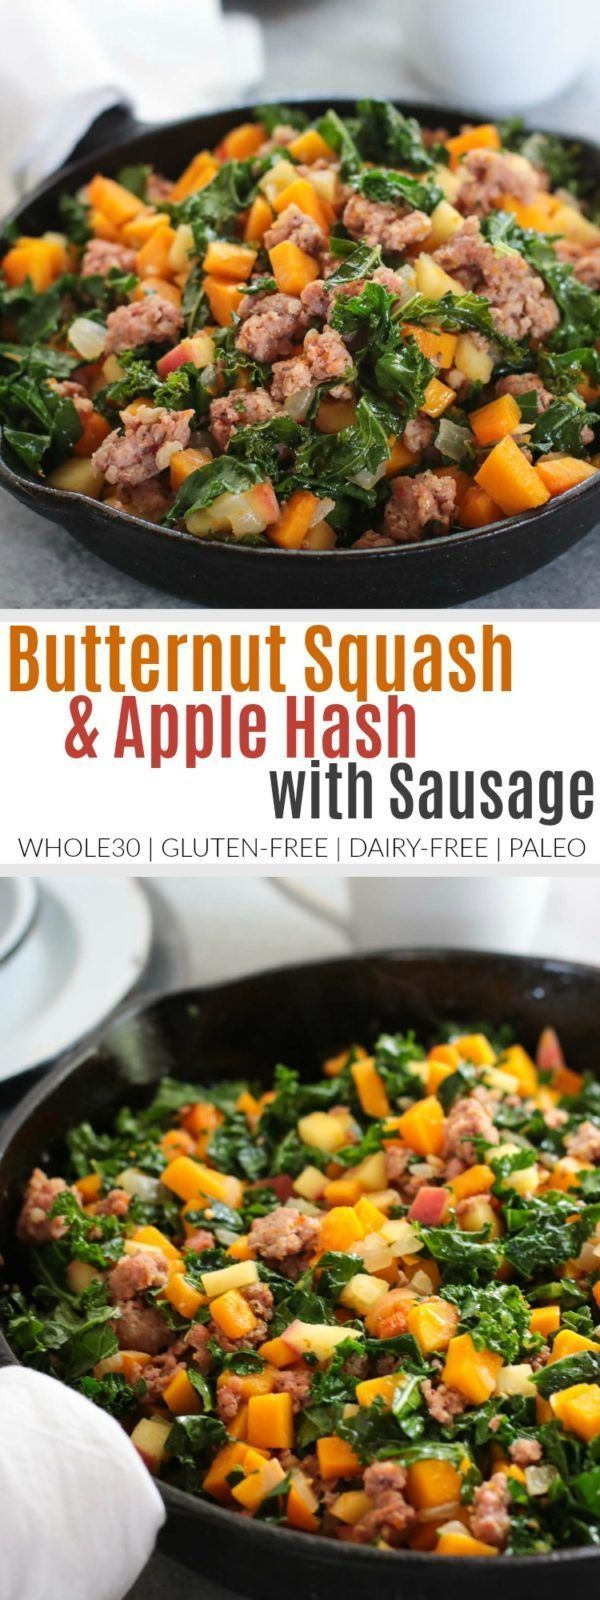 Butternut Squash and Apple Hash with Sausage | healthy breakfast recipes | breakfast recipes healthy | whole30 approved, gluten free, paleo, dairy free